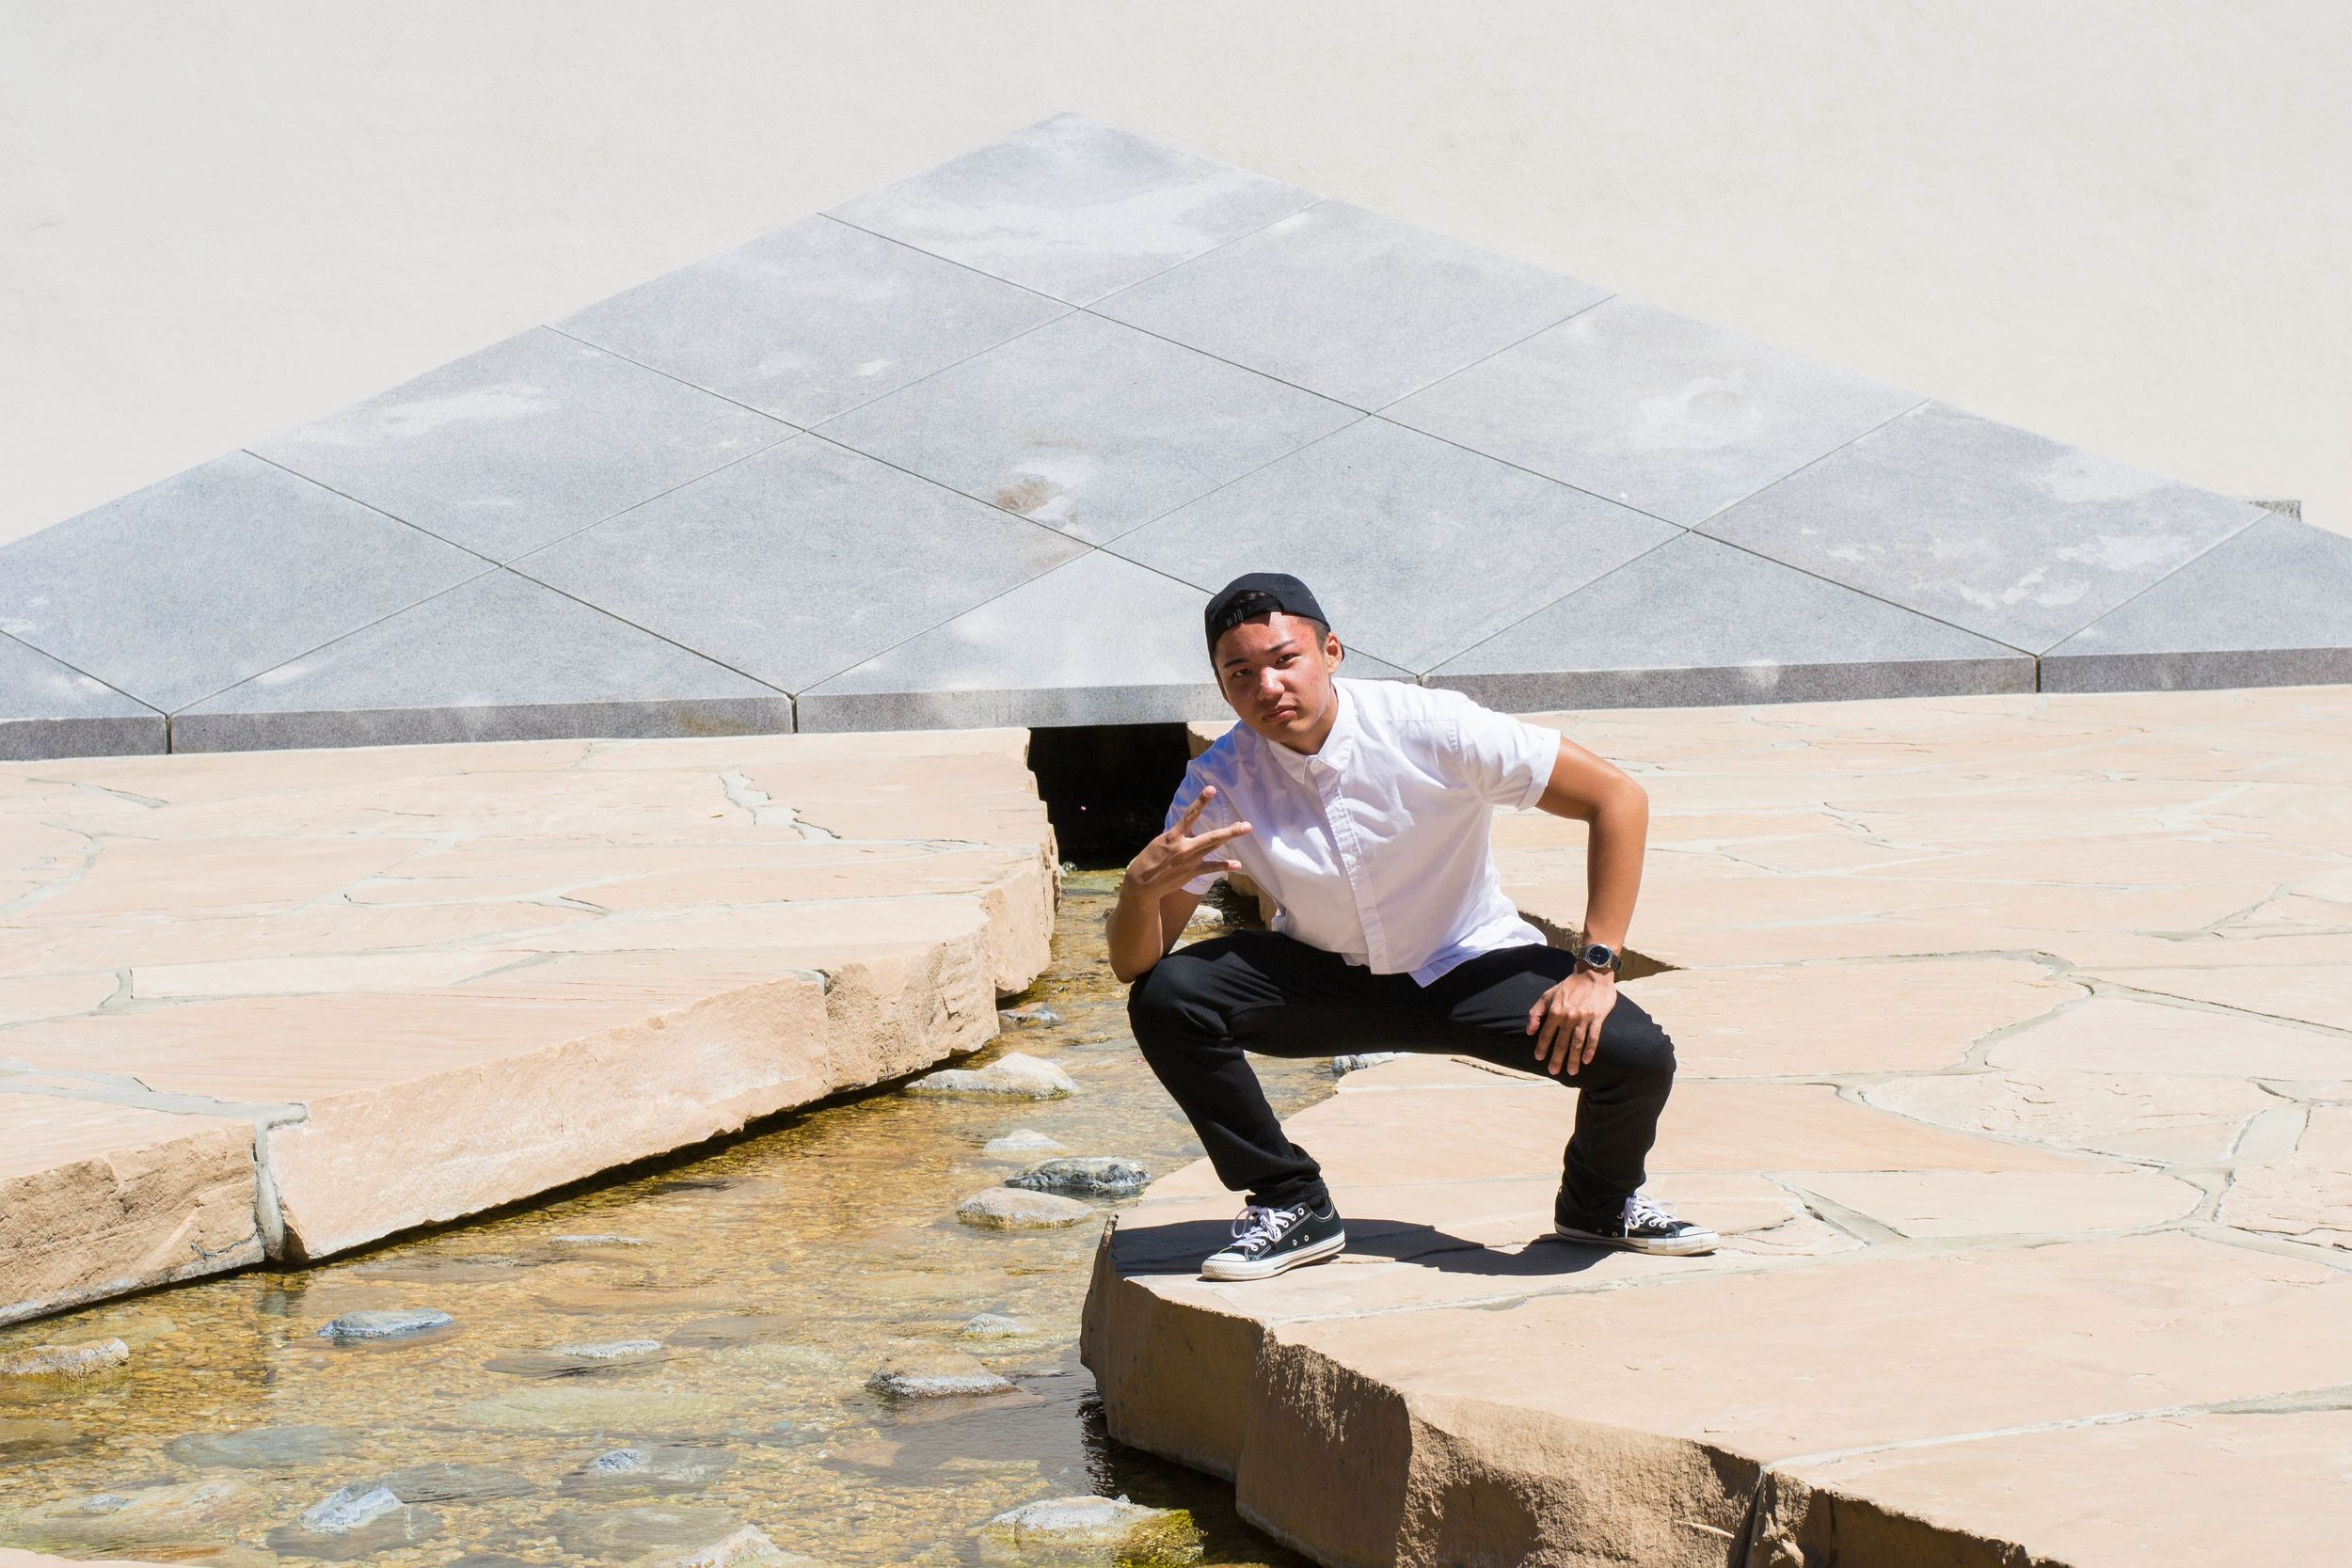 """Name: Matt Martinez   Position: Kronicle   Year: Second Year   Major: Chemistry   Hometown: West Covina, CA   Favorite Quote: """"Life's simple, you make choices & you don't look back."""" - Han, Tokyo Drift   Favorite Food: Sushi"""